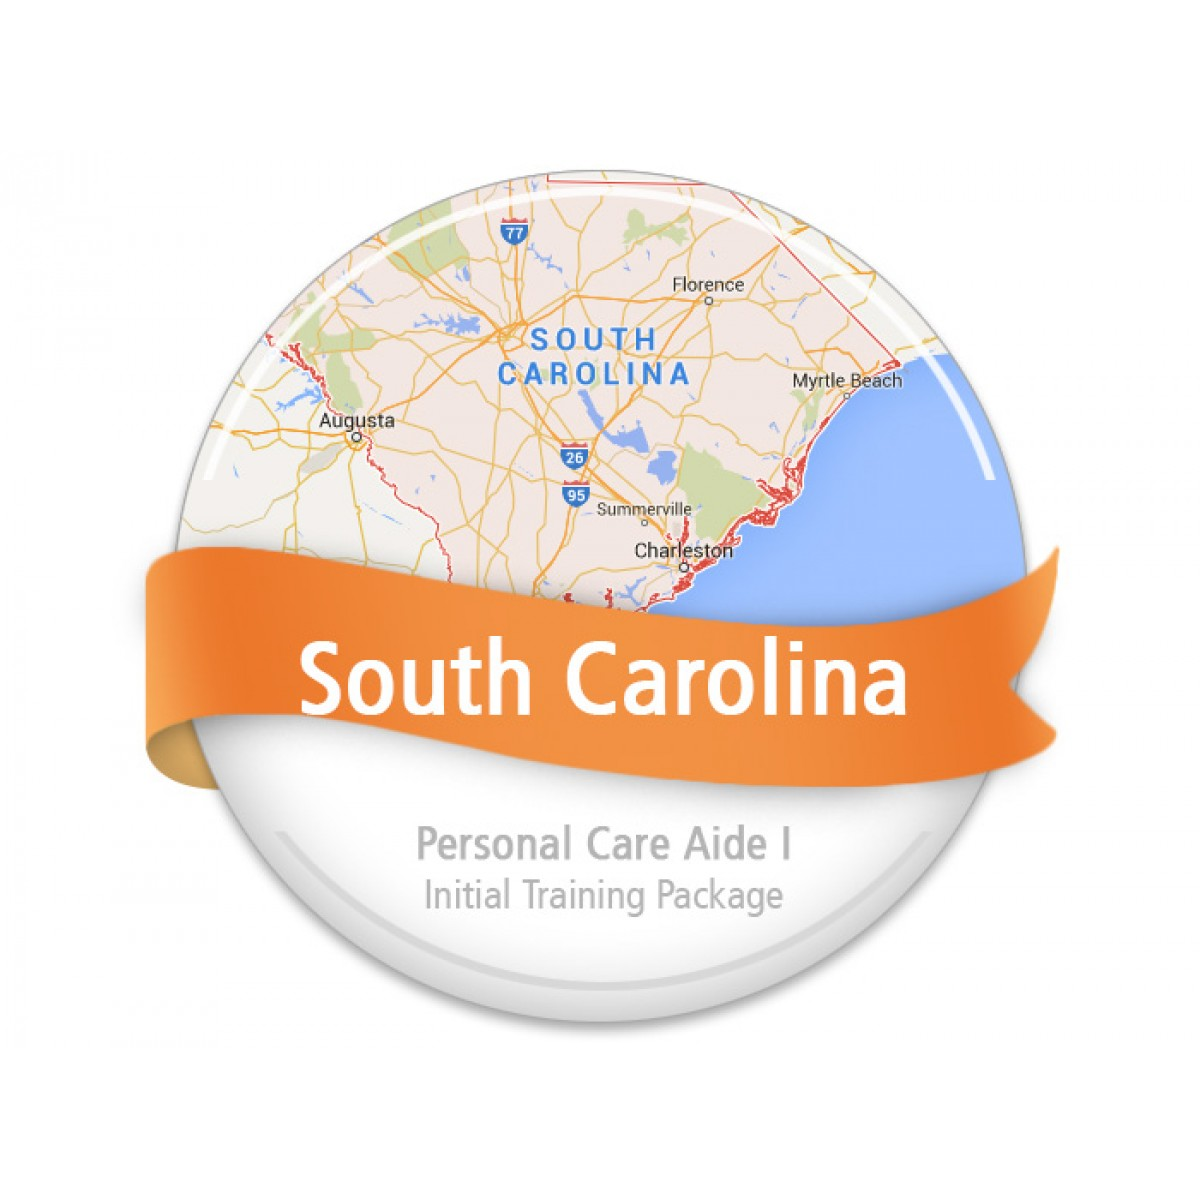 North York Personal Trainer For In Home: South Carolina Personal Care Aide I Initial Training Package